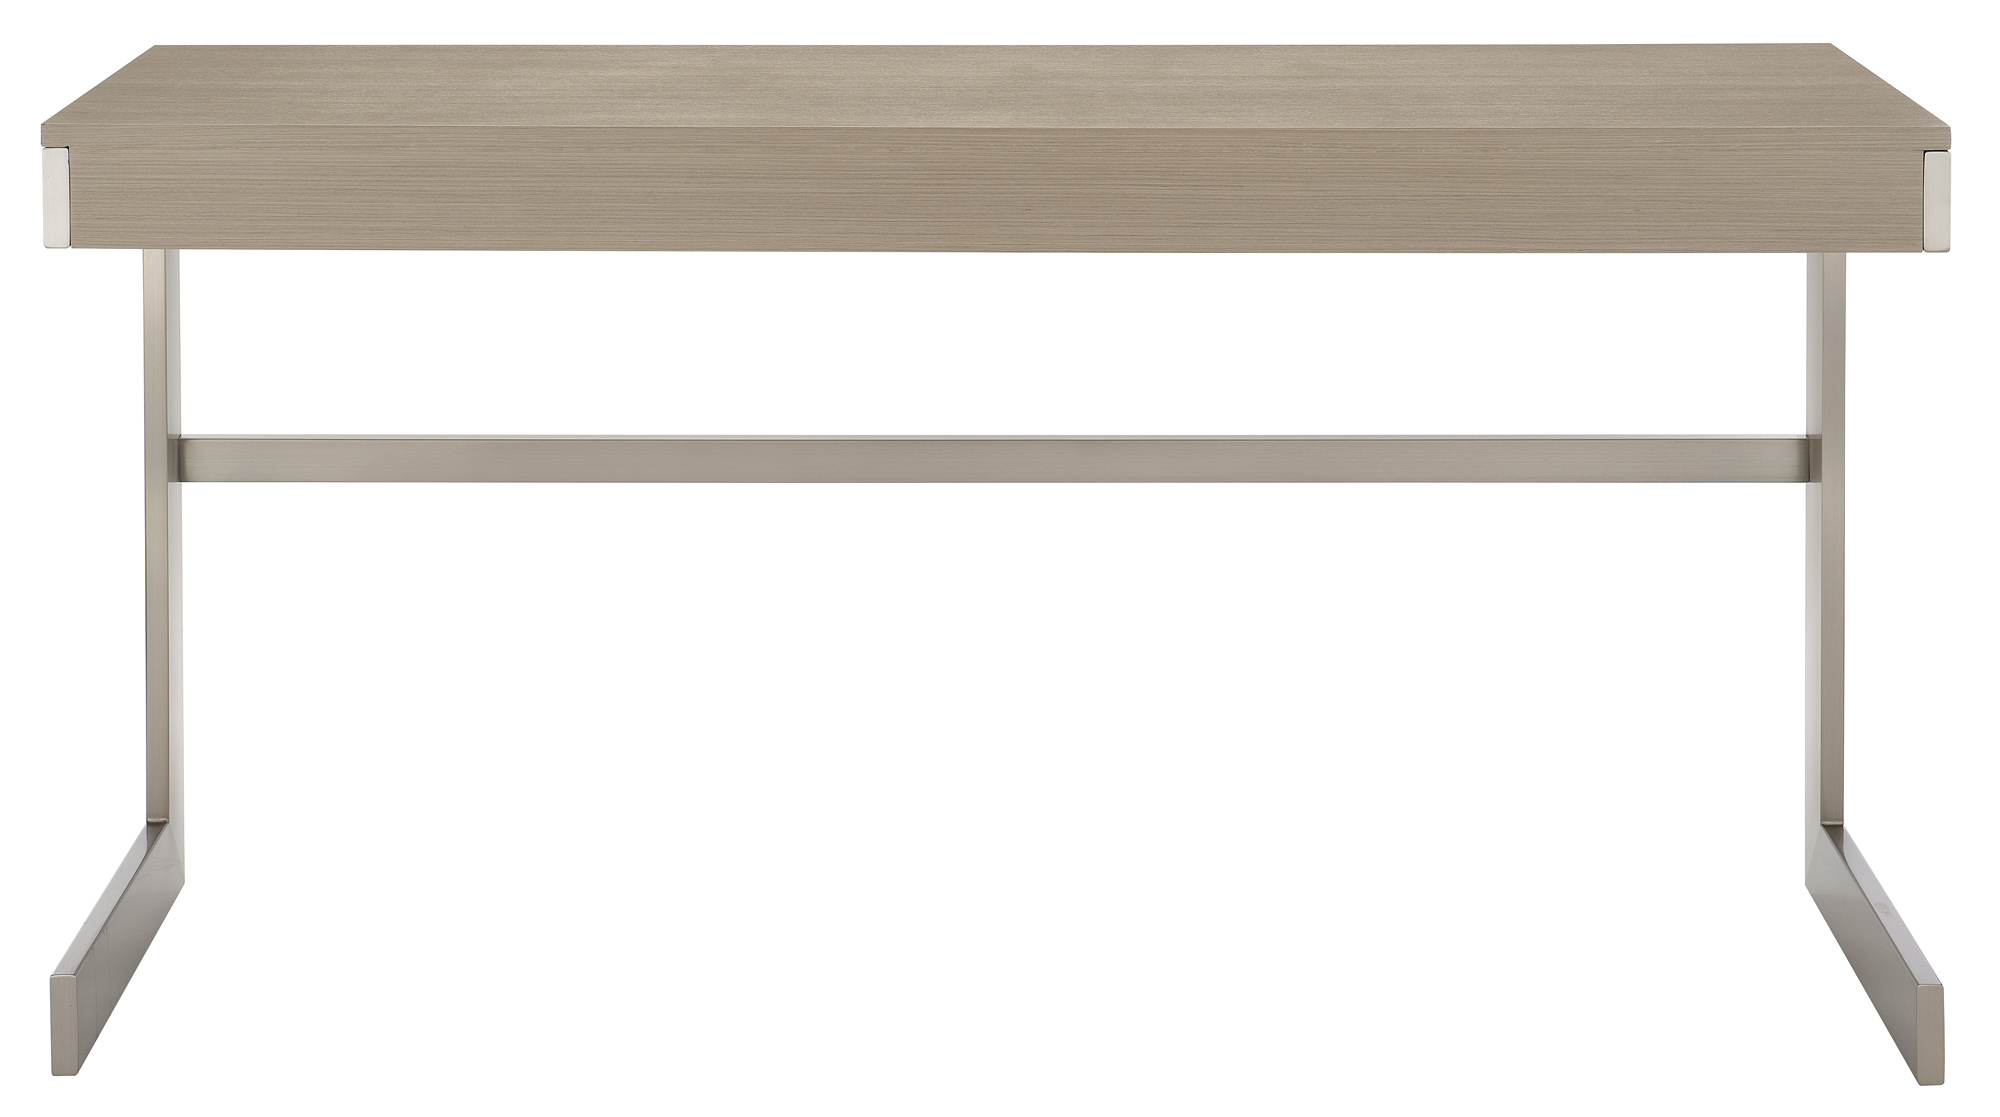 Paloma Console by Bernhardt at Esprit Decor Home Furnishings